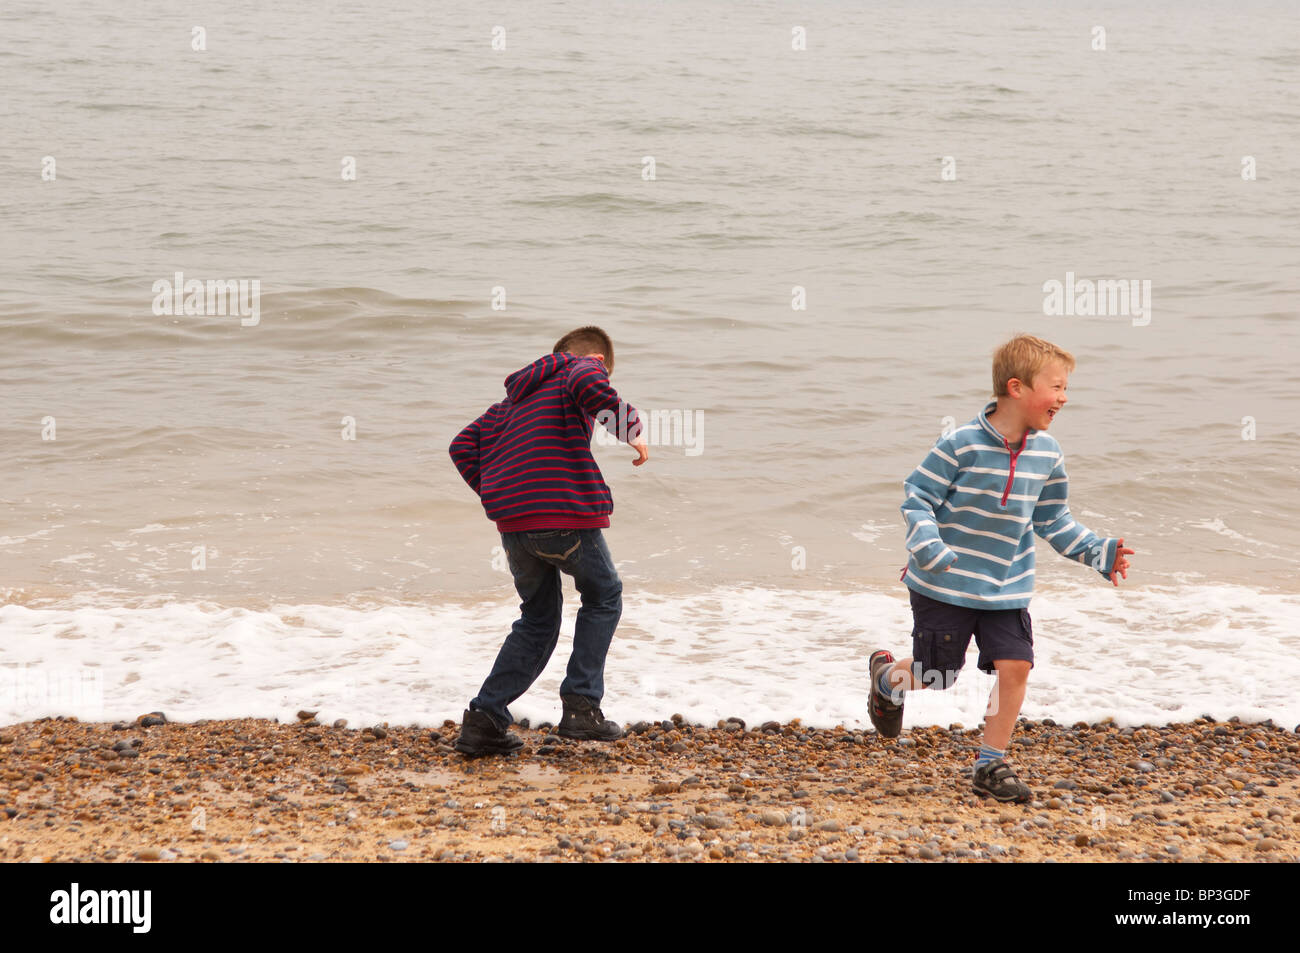 A MODEL RELEASED picture of two boys ( 6 & 10 ) playing by the sea on a UK beach - Stock Image